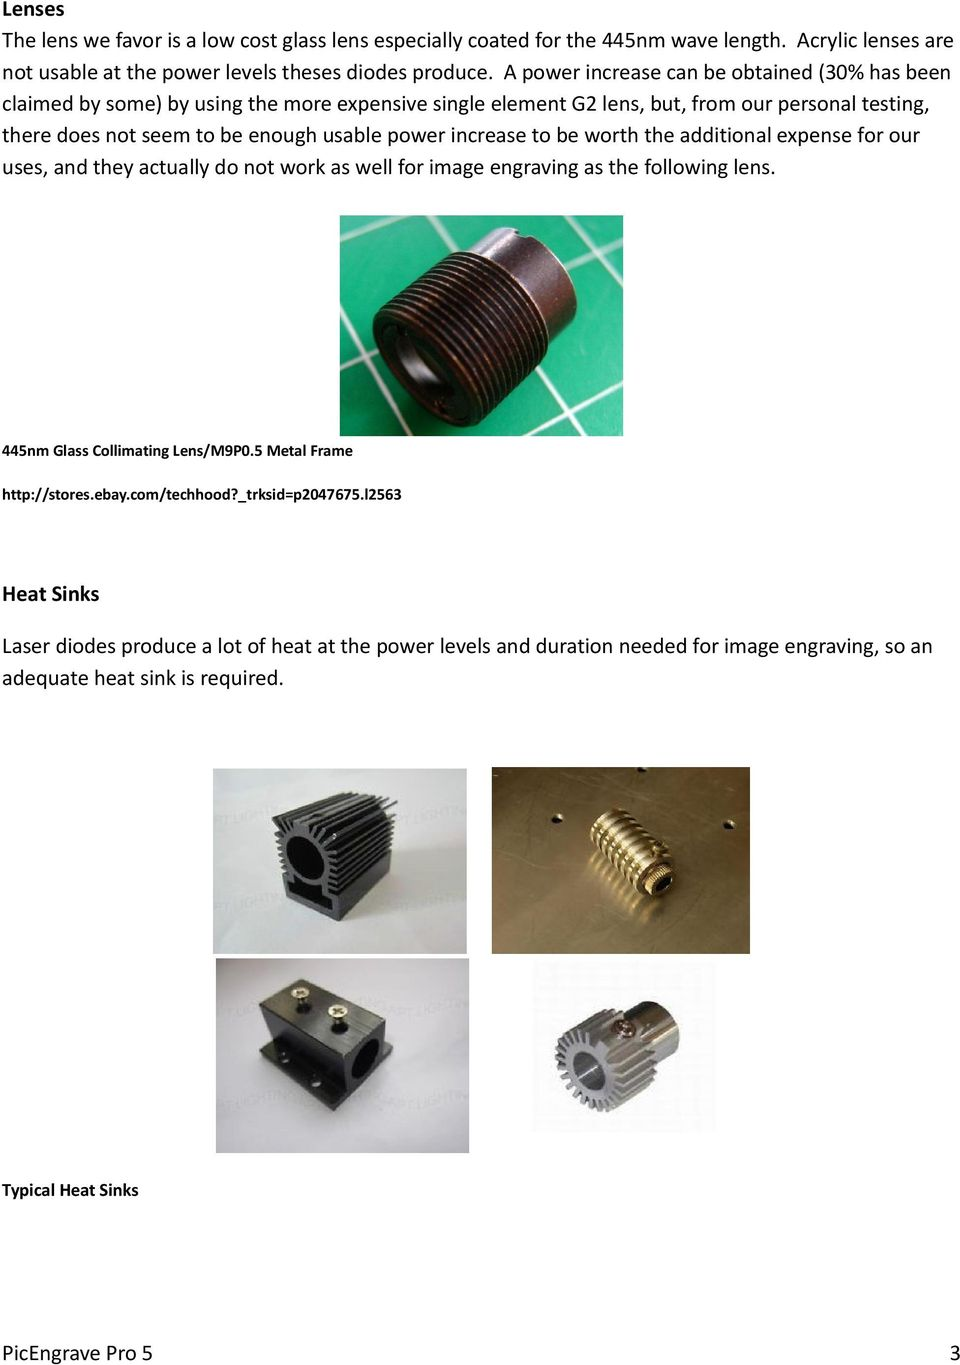 Analog Laser Diode Setup for Gray Scale Image Engraving - PDF